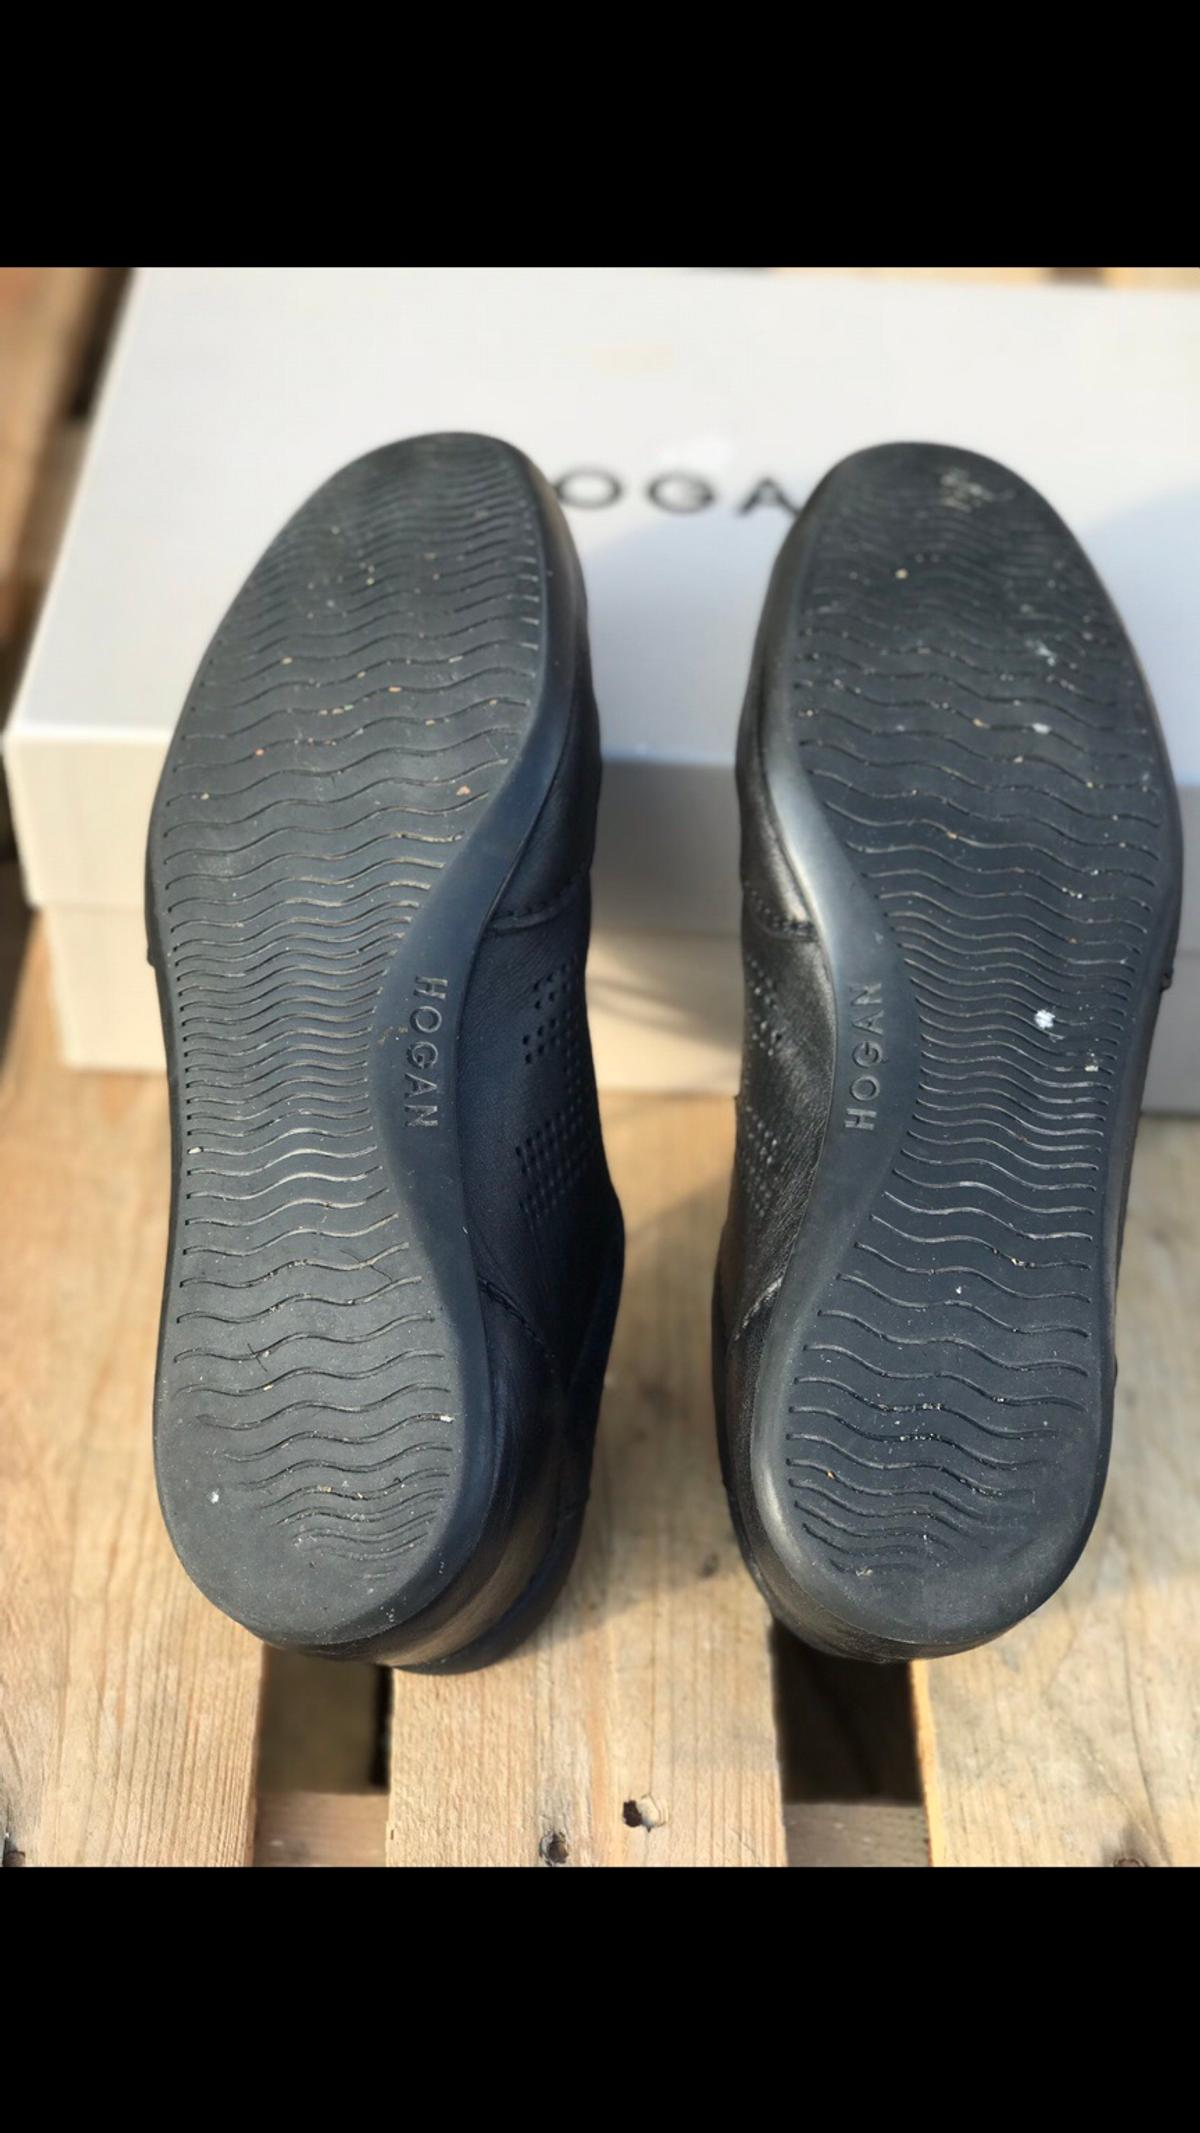 Hogan olympia donna 38 in 25081 Nuvolento for €28.00 for sale | Shpock